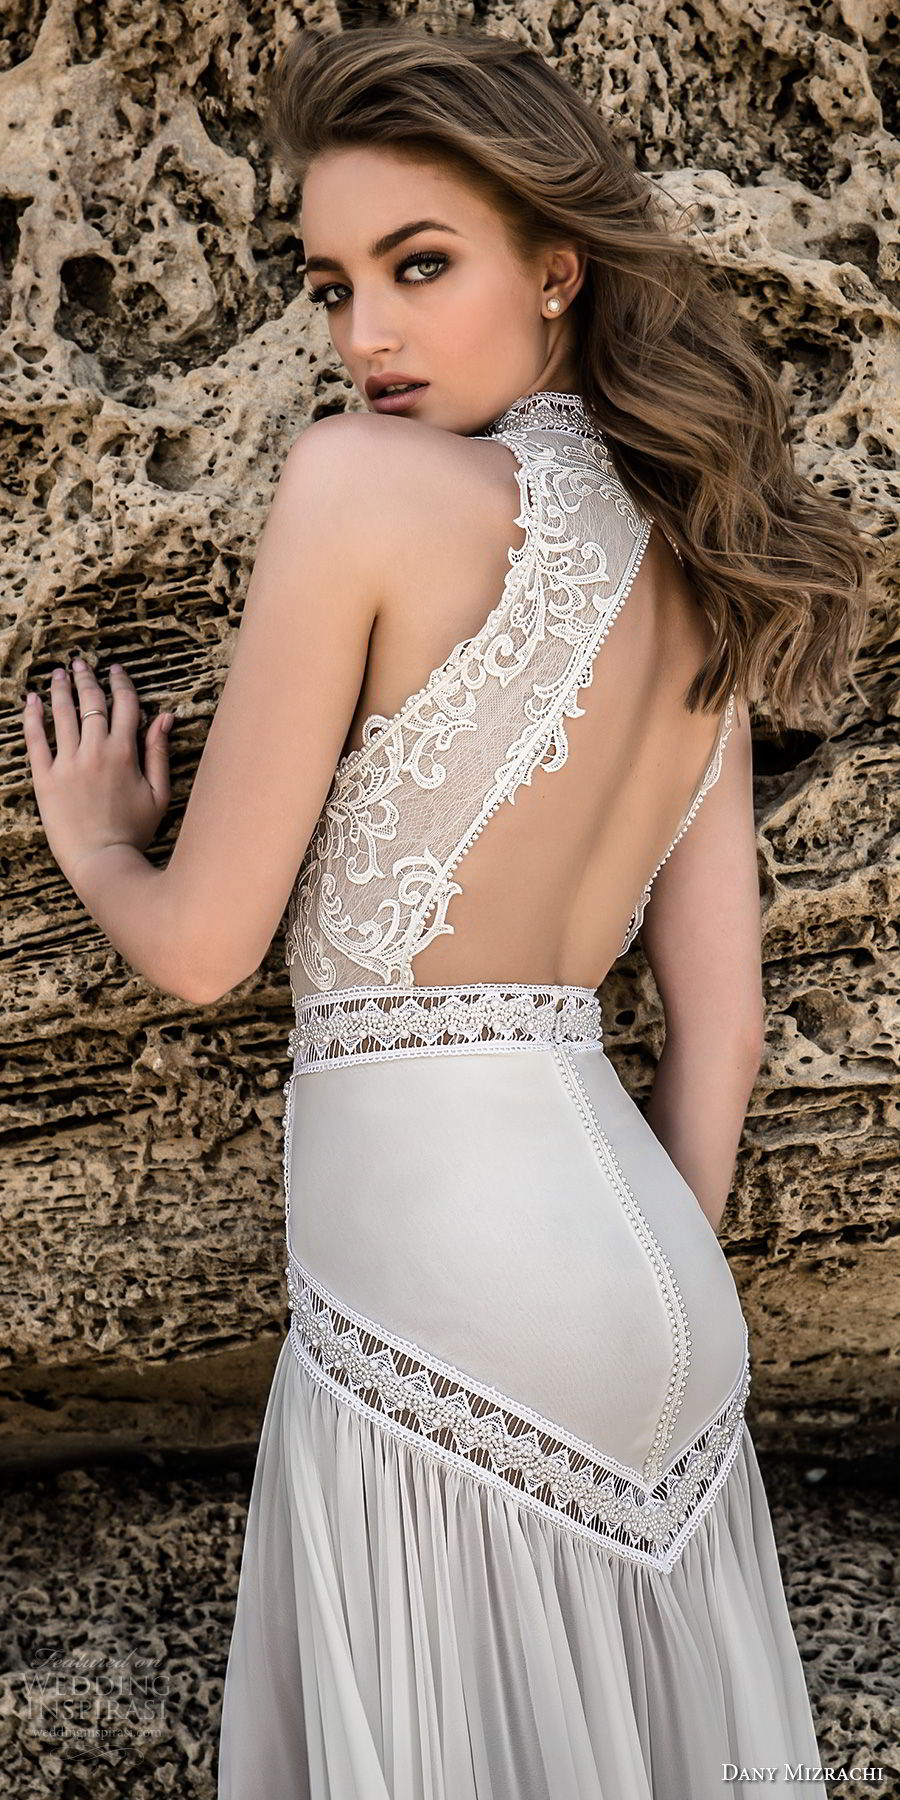 dany mizrachi 2018 bridal sleeveless high neck heavily embellished keyhole bodice flowy skirt bohemian sheath wedding dress keyhole back chapel train (5) zbv